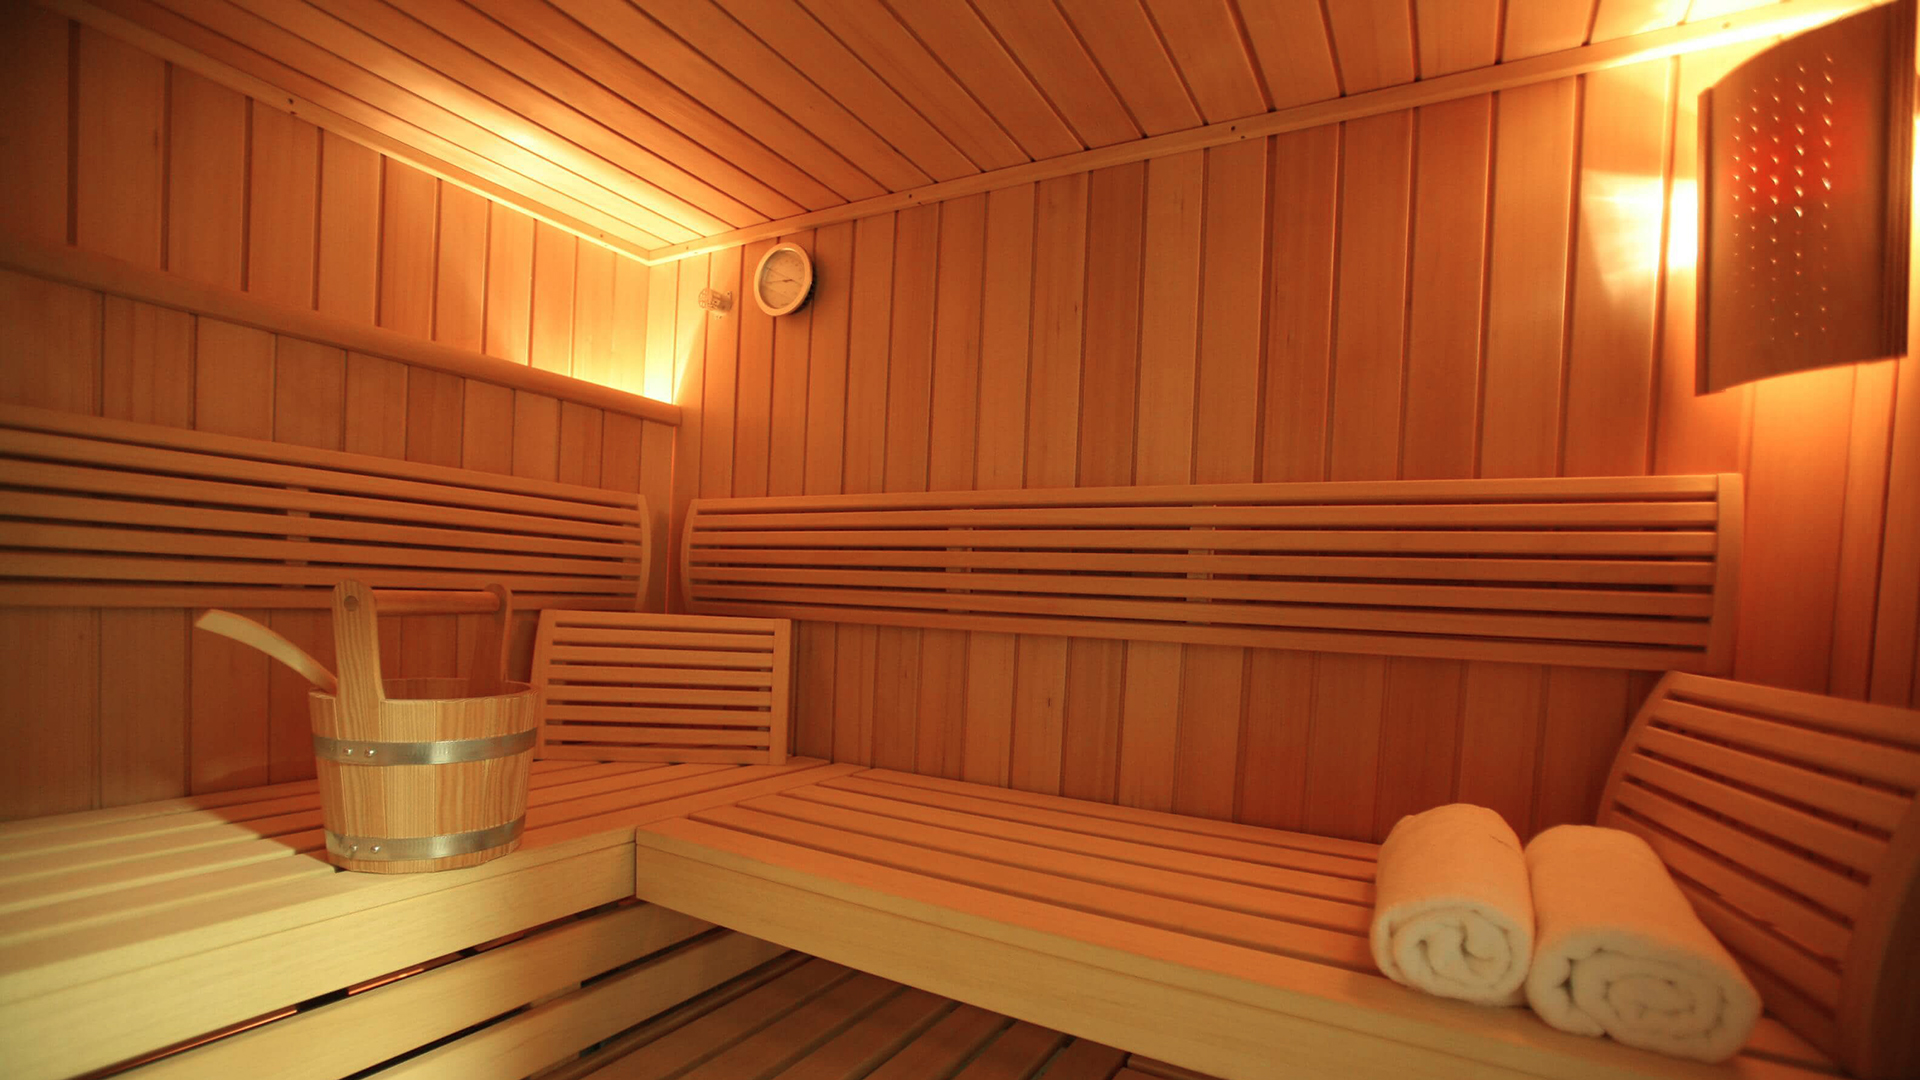 Sauna. Virtual background to use on Zoom, Microsoft Teams, Skype, Google Meet, WebEx or any other compatible app.